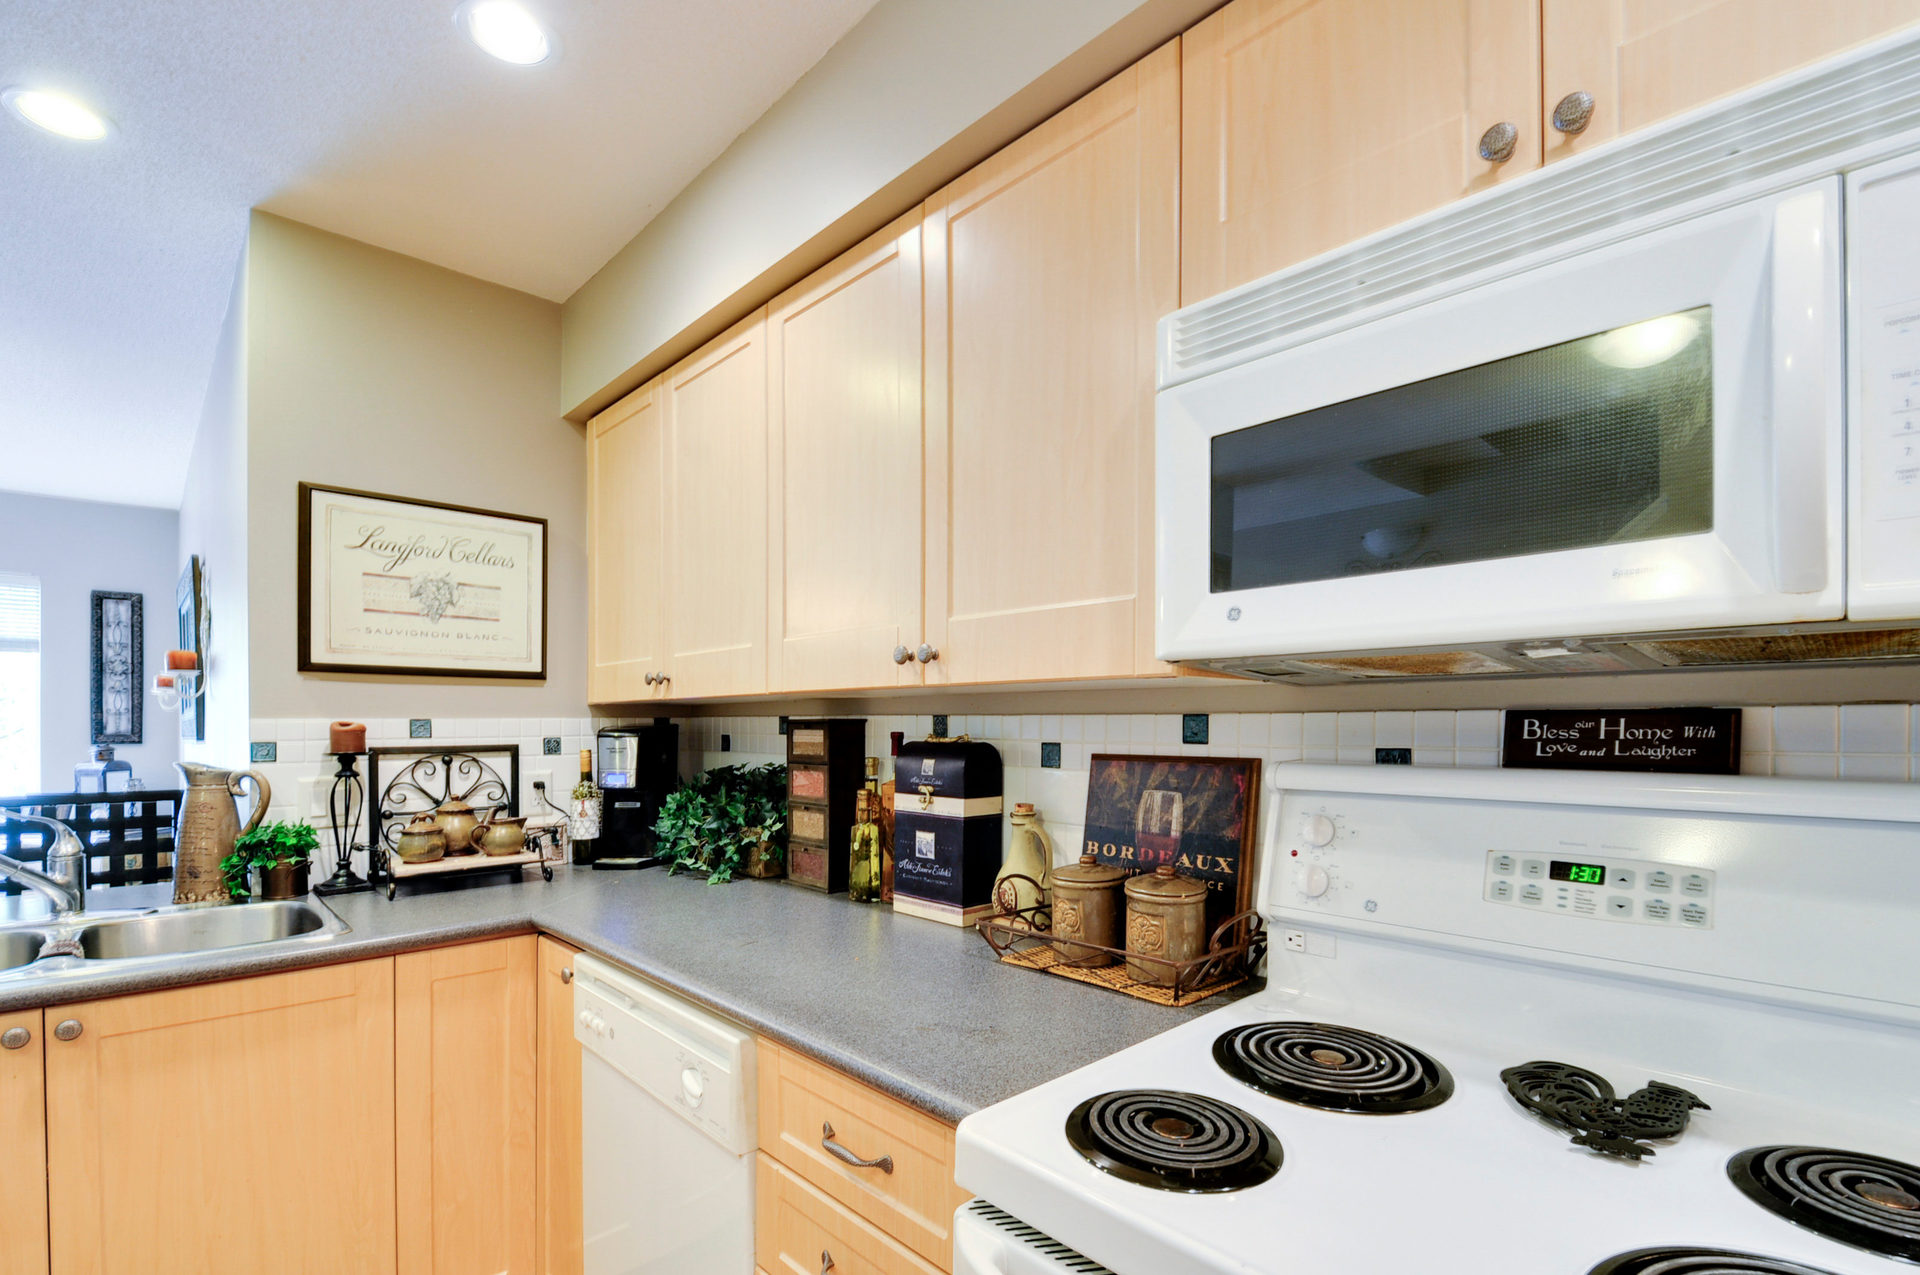 14115168-36-ave-print-006-23-kitchen-3216x2136-300dpi at 141 - 15168 36 Avenue, Morgan Creek, South Surrey White Rock